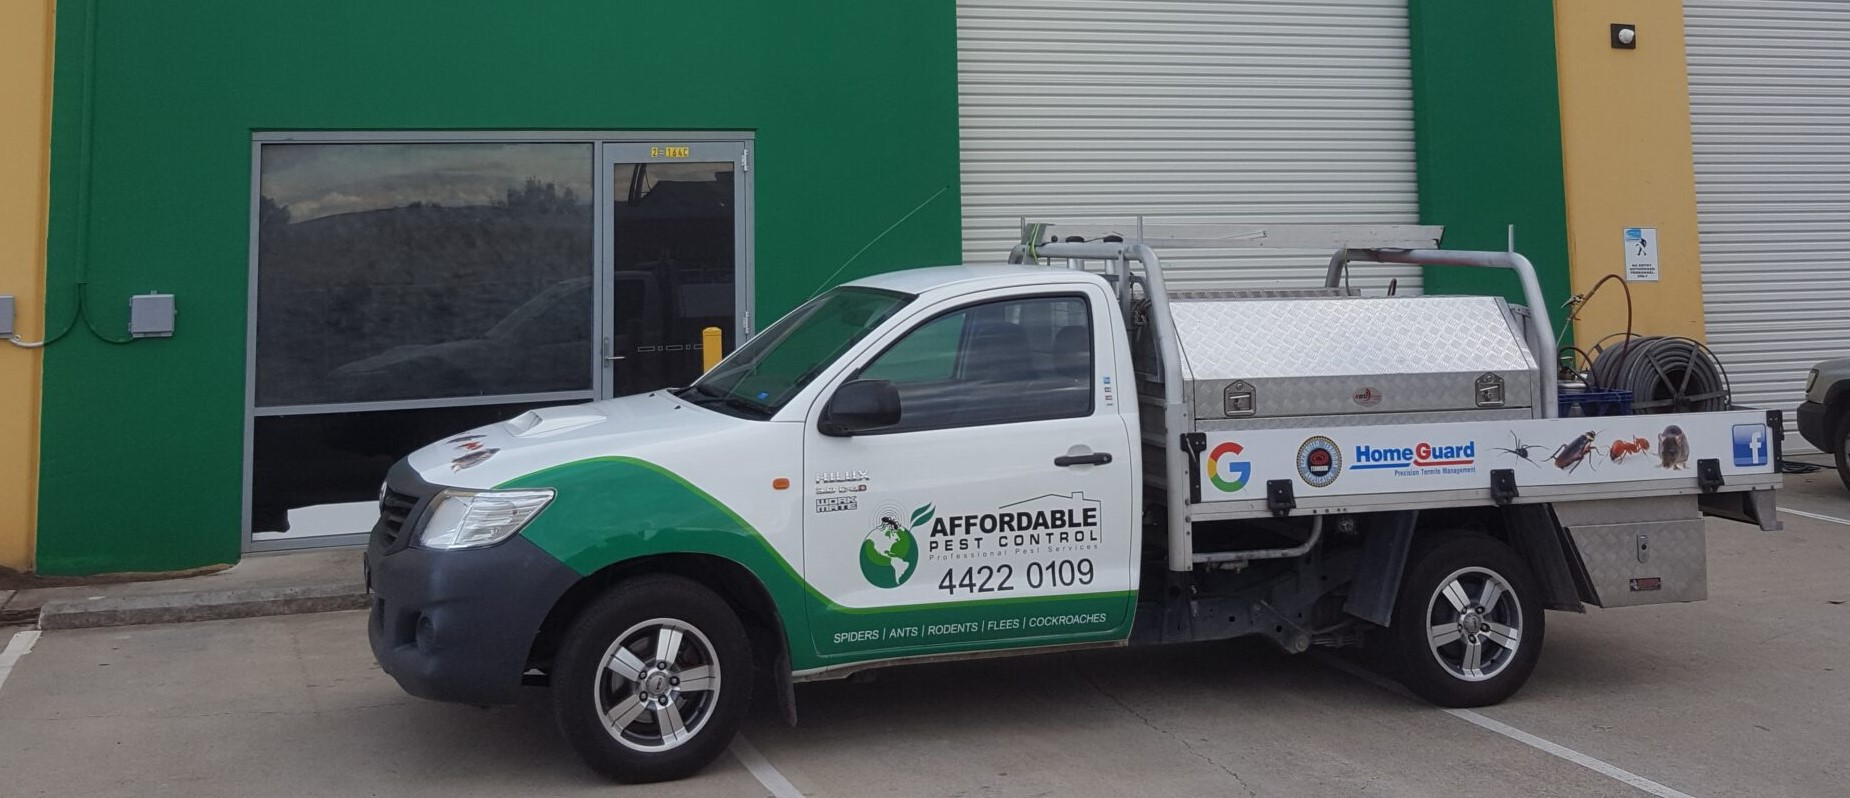 Call Affordable Pest control to make your home and office pest free. we will visit your place in Shoalhaven and Illawarra and make it pest free